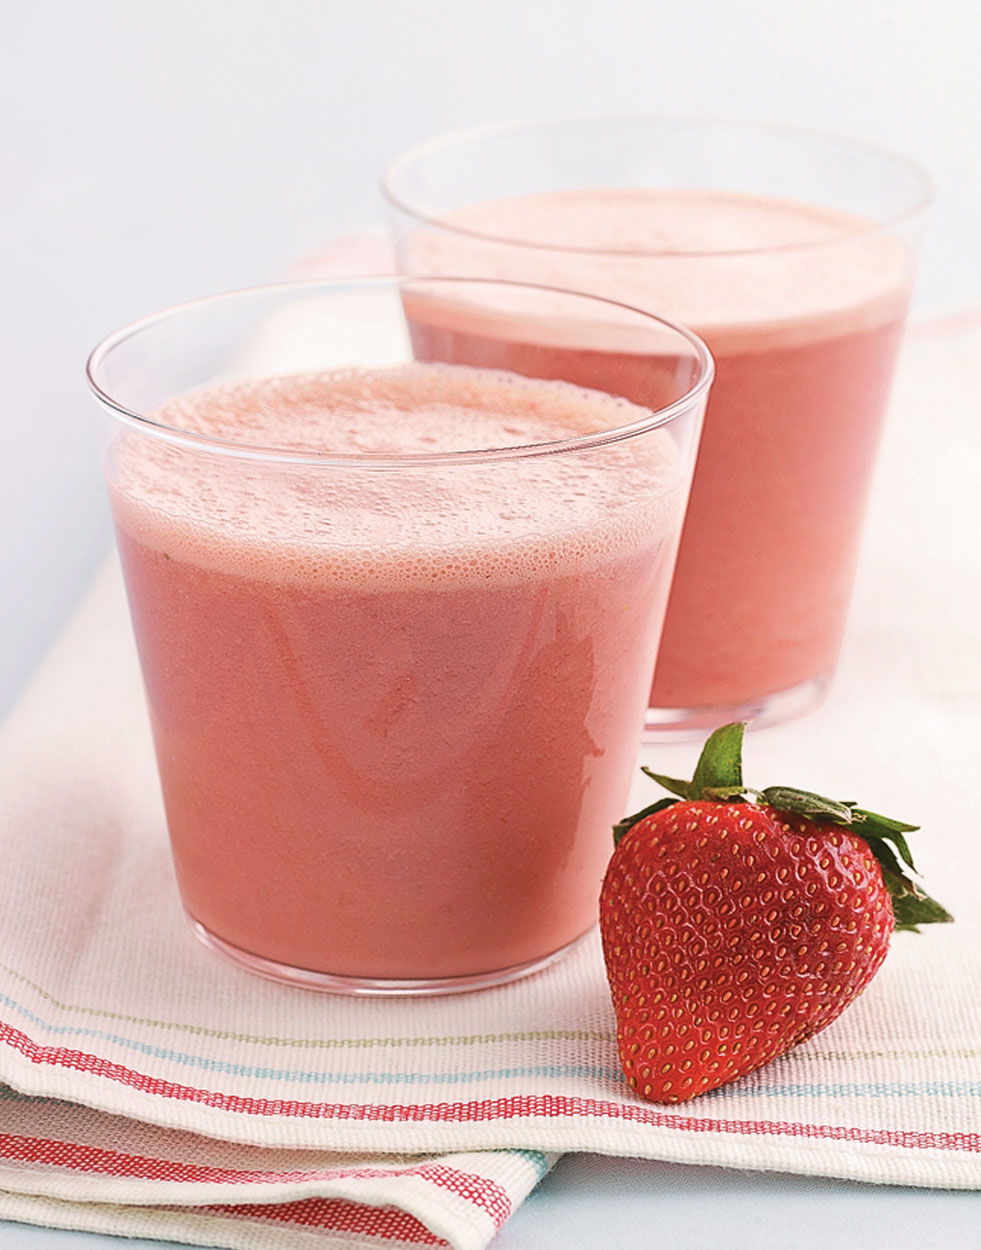 Strawberry-Buttermilk Smoothies